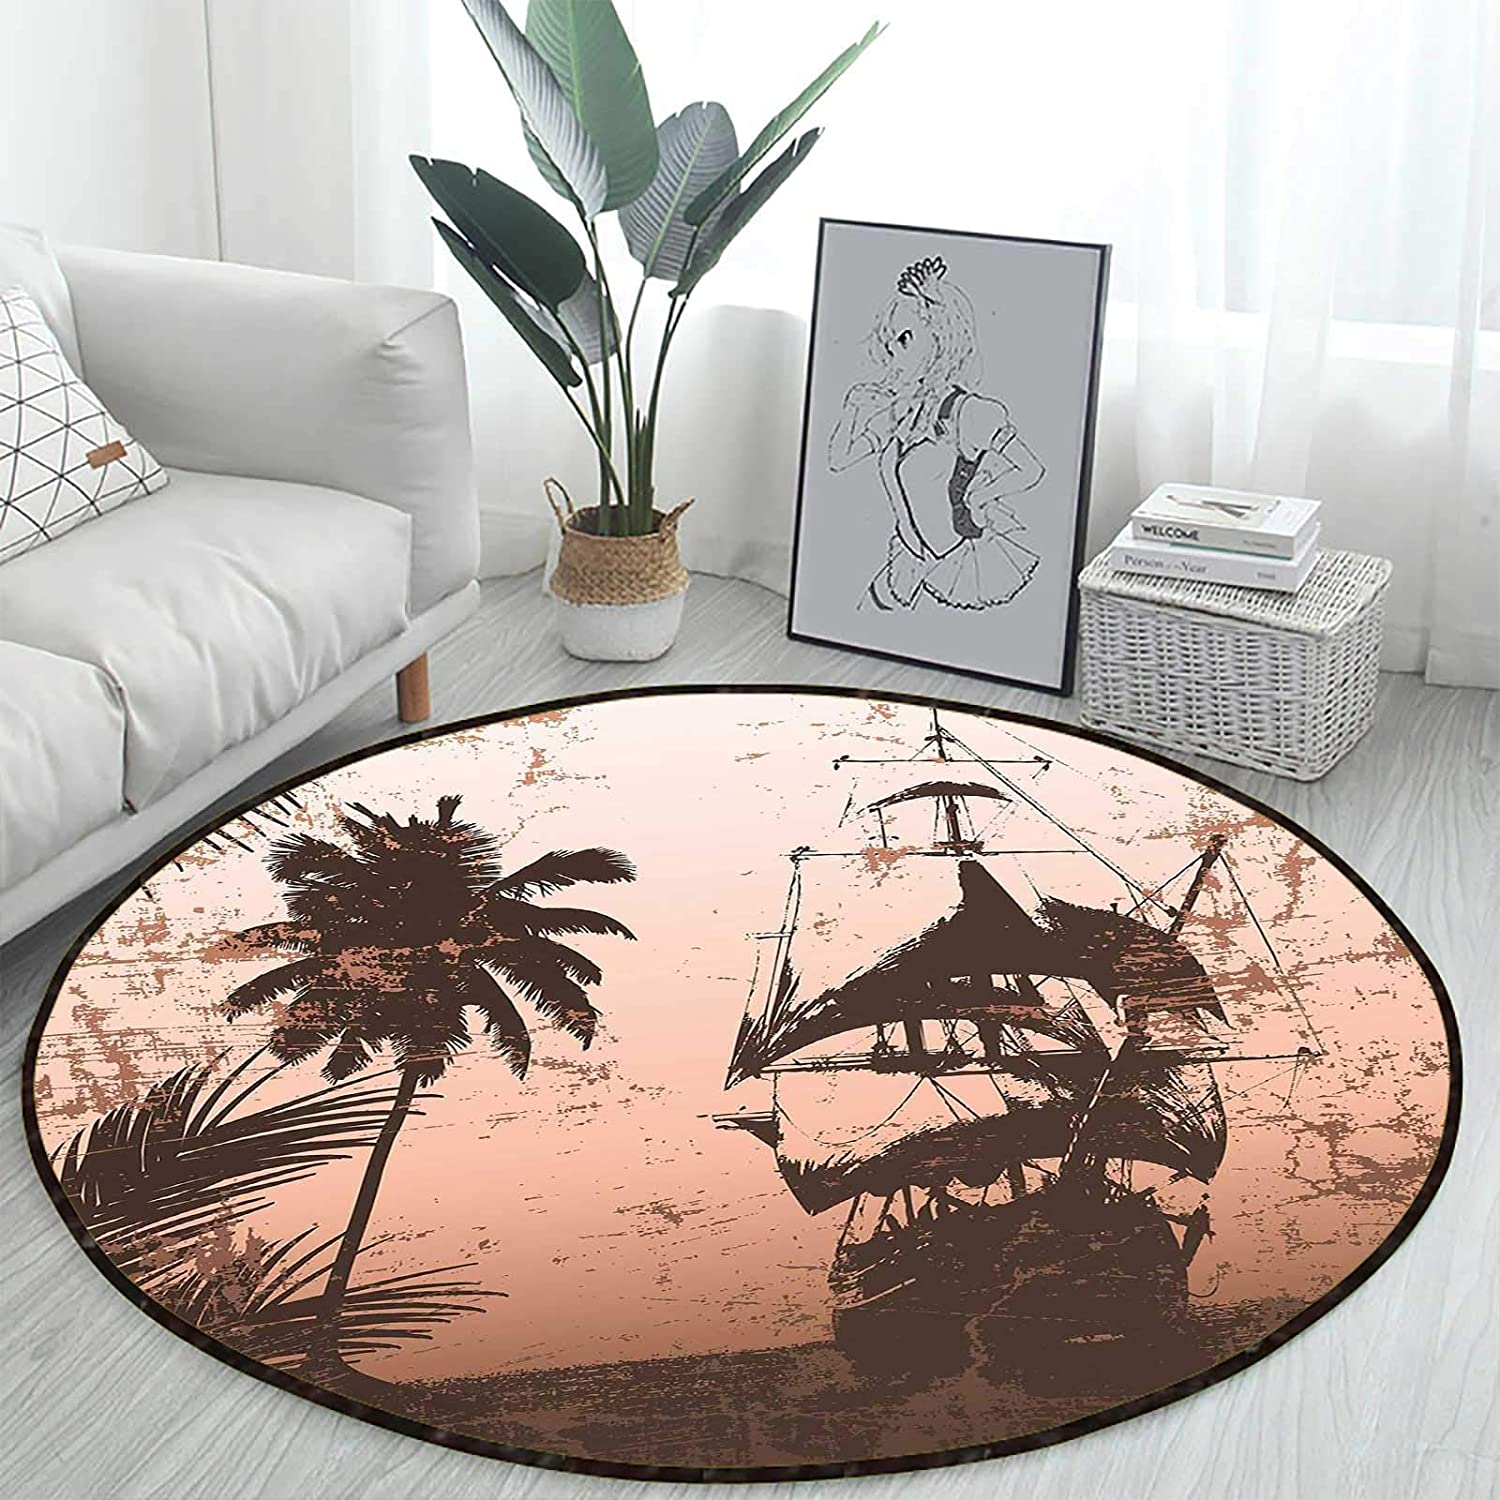 Salmon Army Green Office Swivel Round Ocean Max 62% OFF Fees free!! Chair Decorative Mat